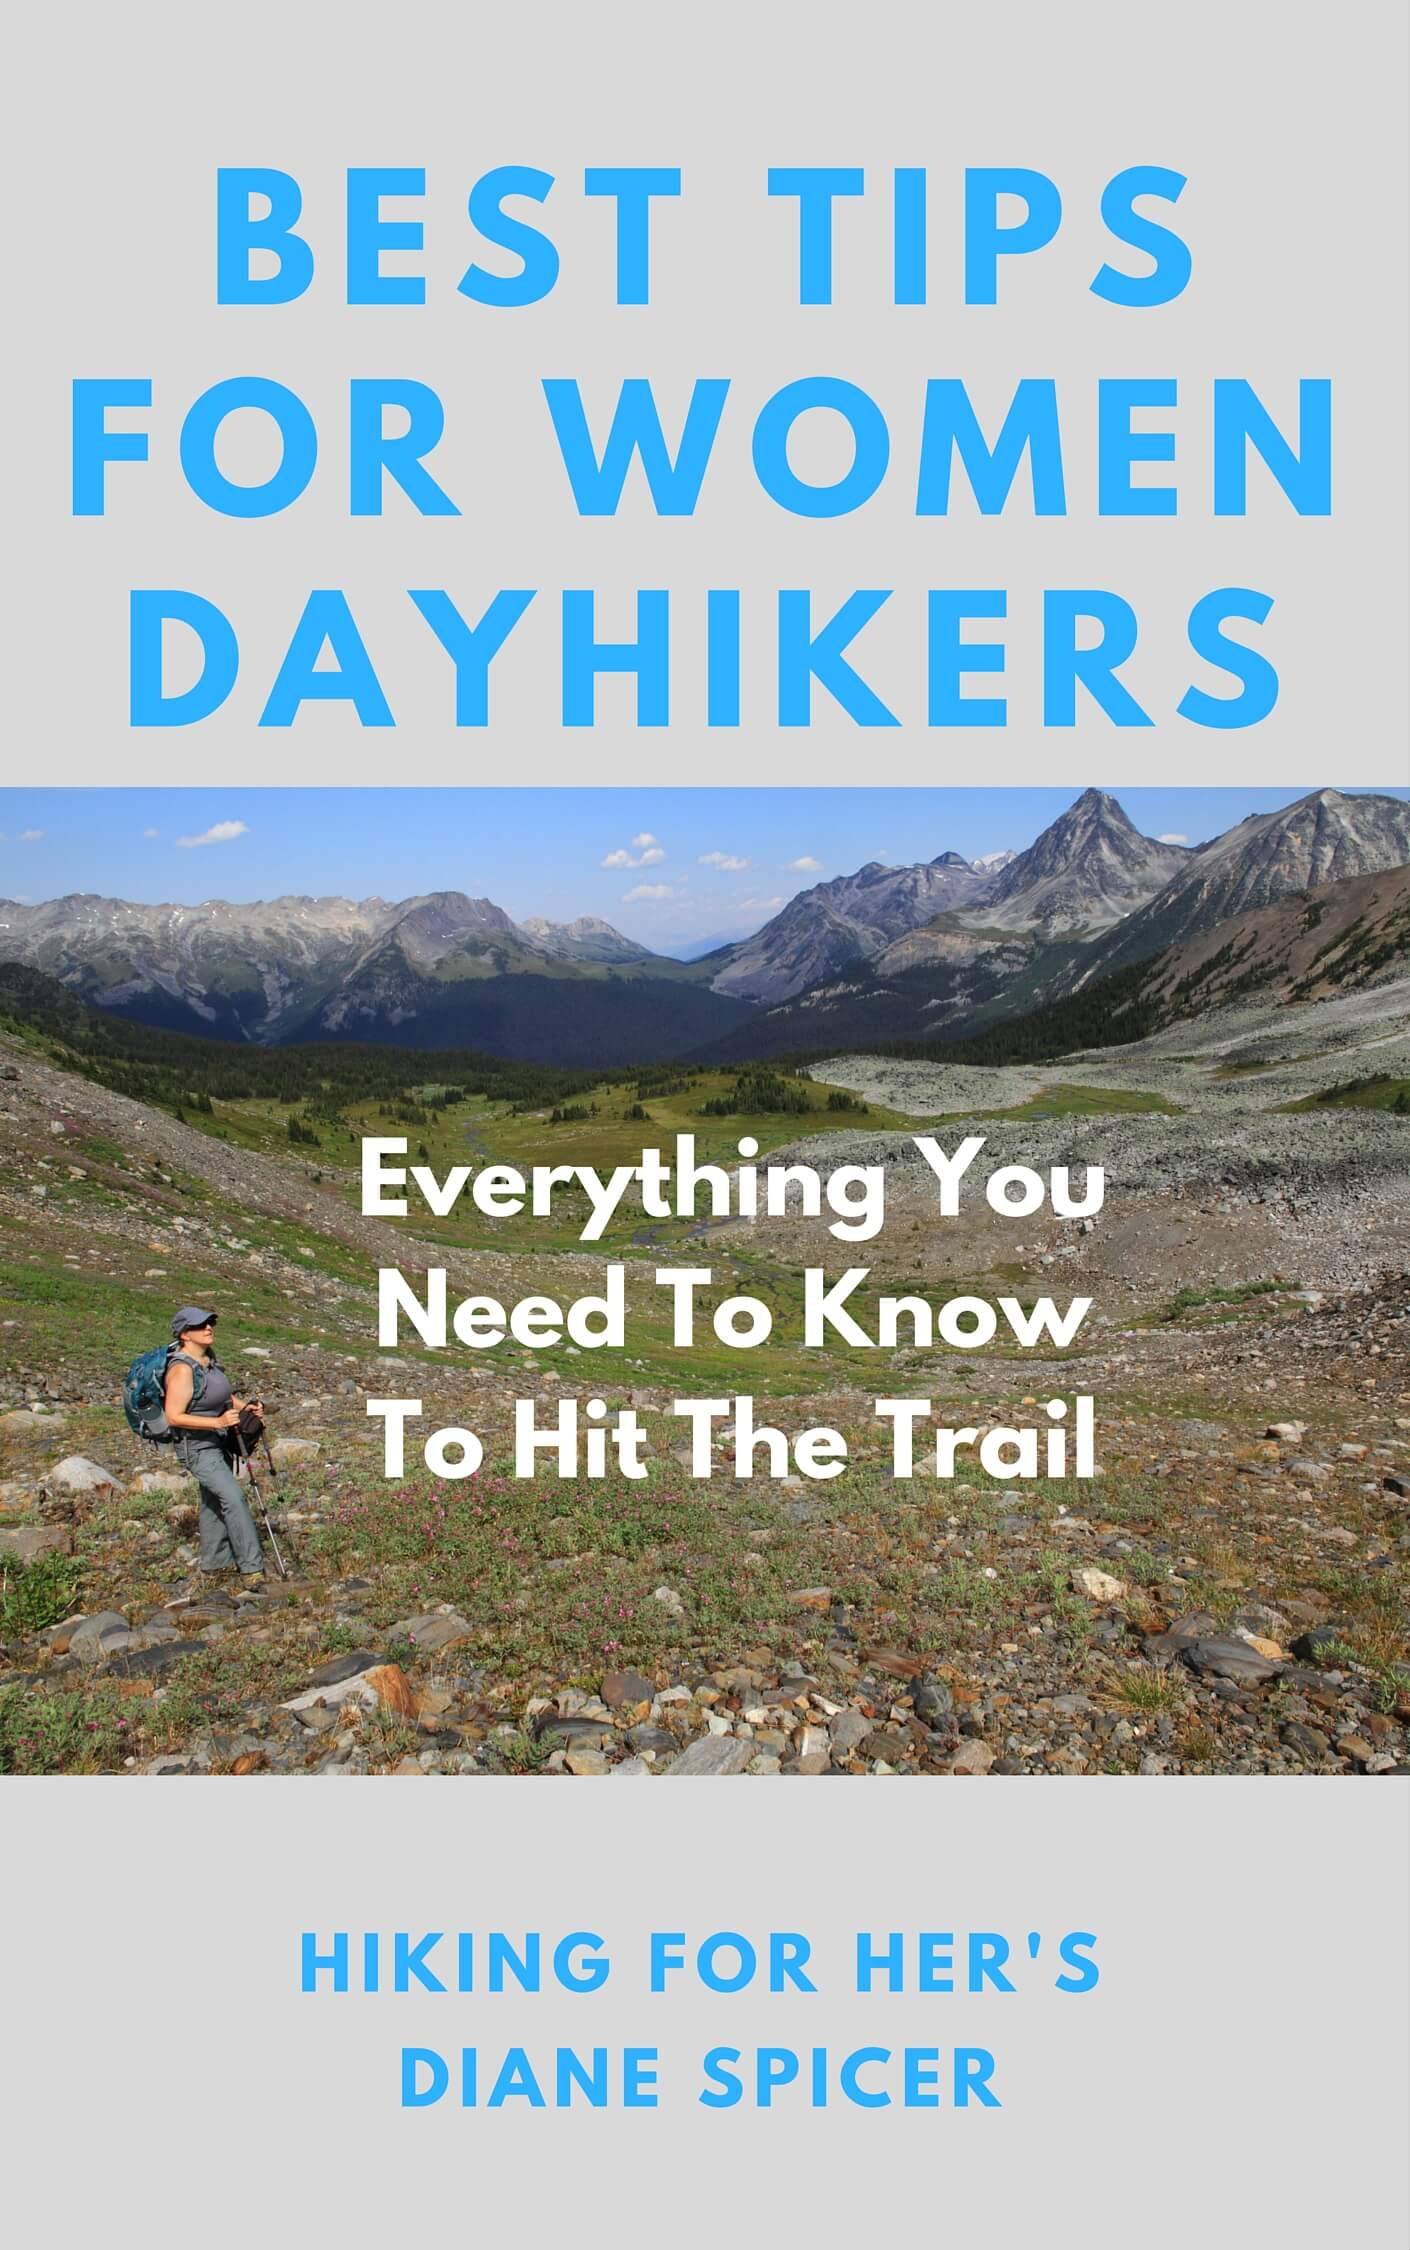 Get all the best day hiking tips in one place with Hiking For Her's book. #dayhikes #hiking #hikingtips #bestdayhikes #hike #womenhikers